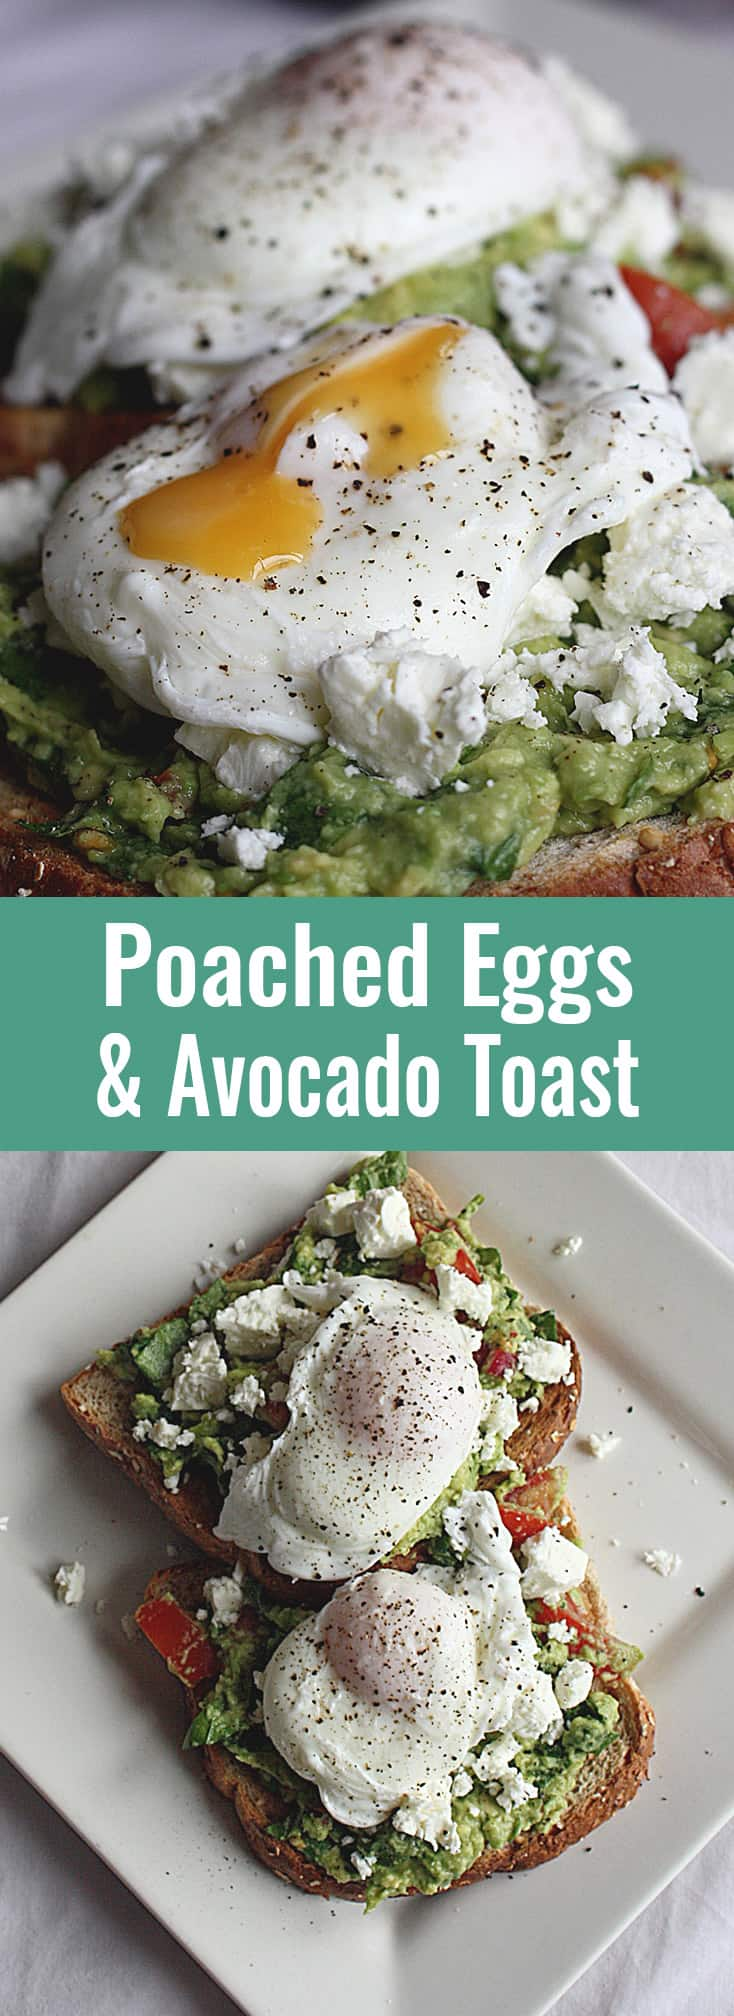 This Poached Eggs & Avocado Toast Recipe Will Transform Your Breakfast